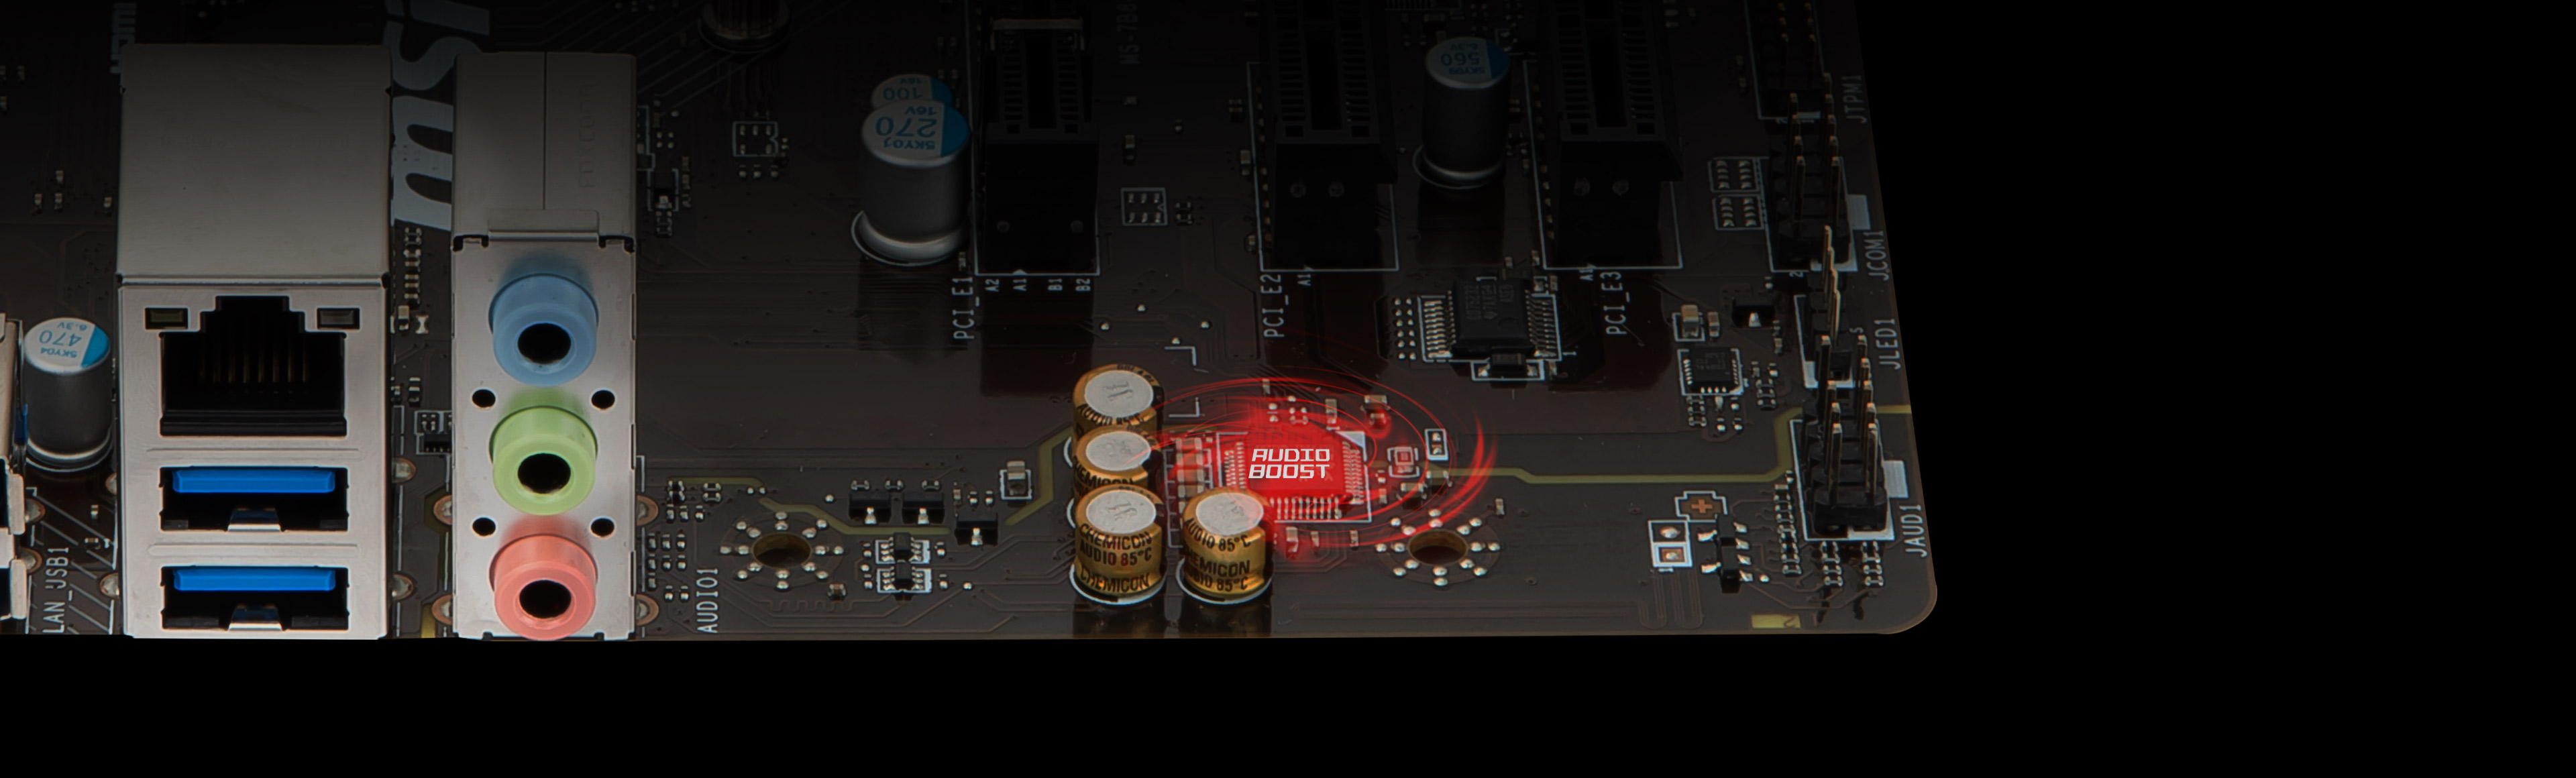 B450M PRO-M2 | Motherboard - The world leader in motherboard